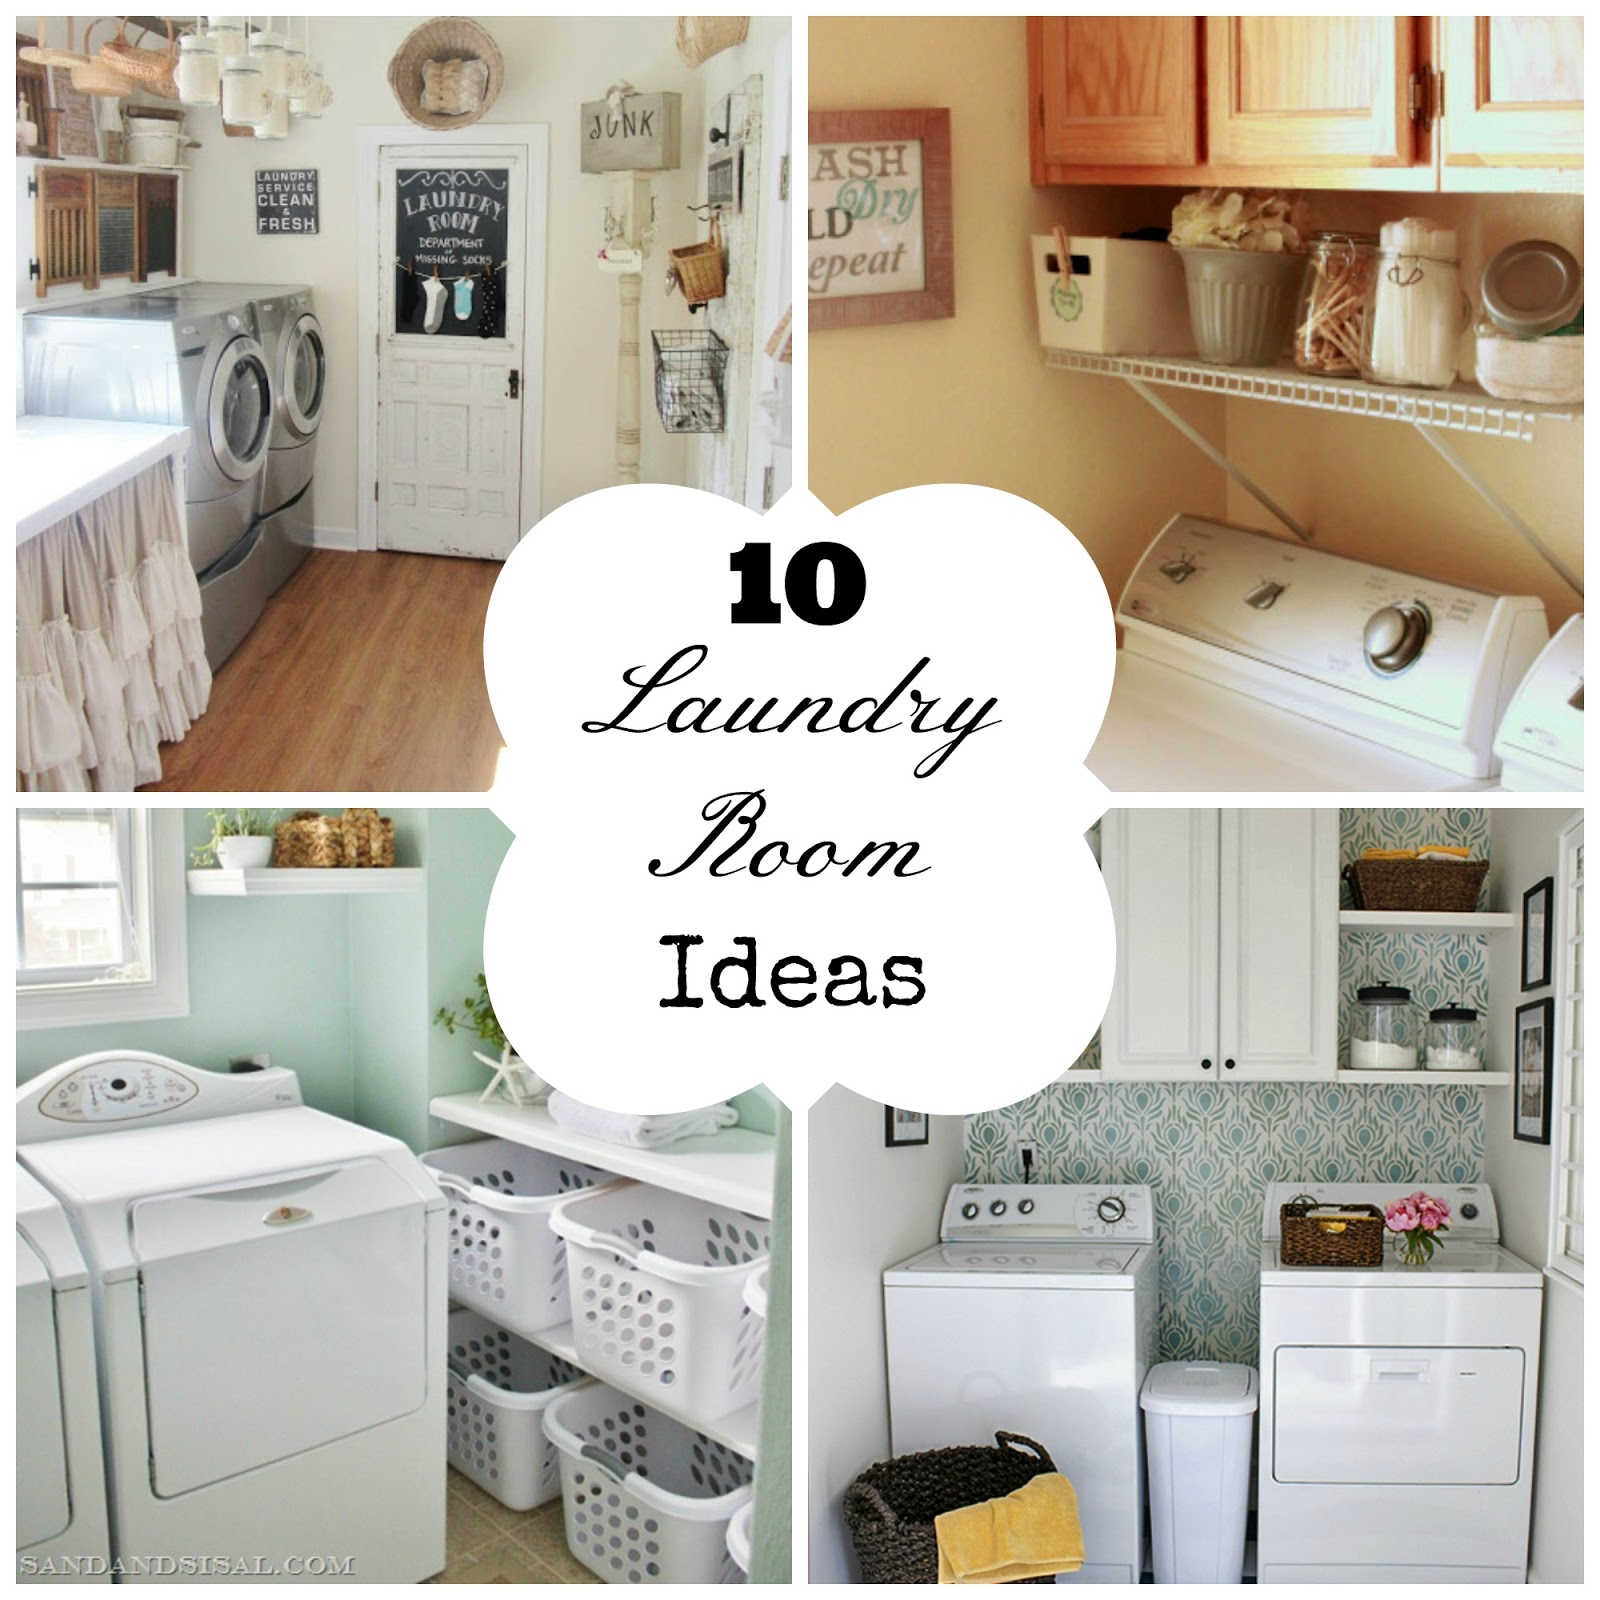 laundry room ideas for you interior decorating las vegas